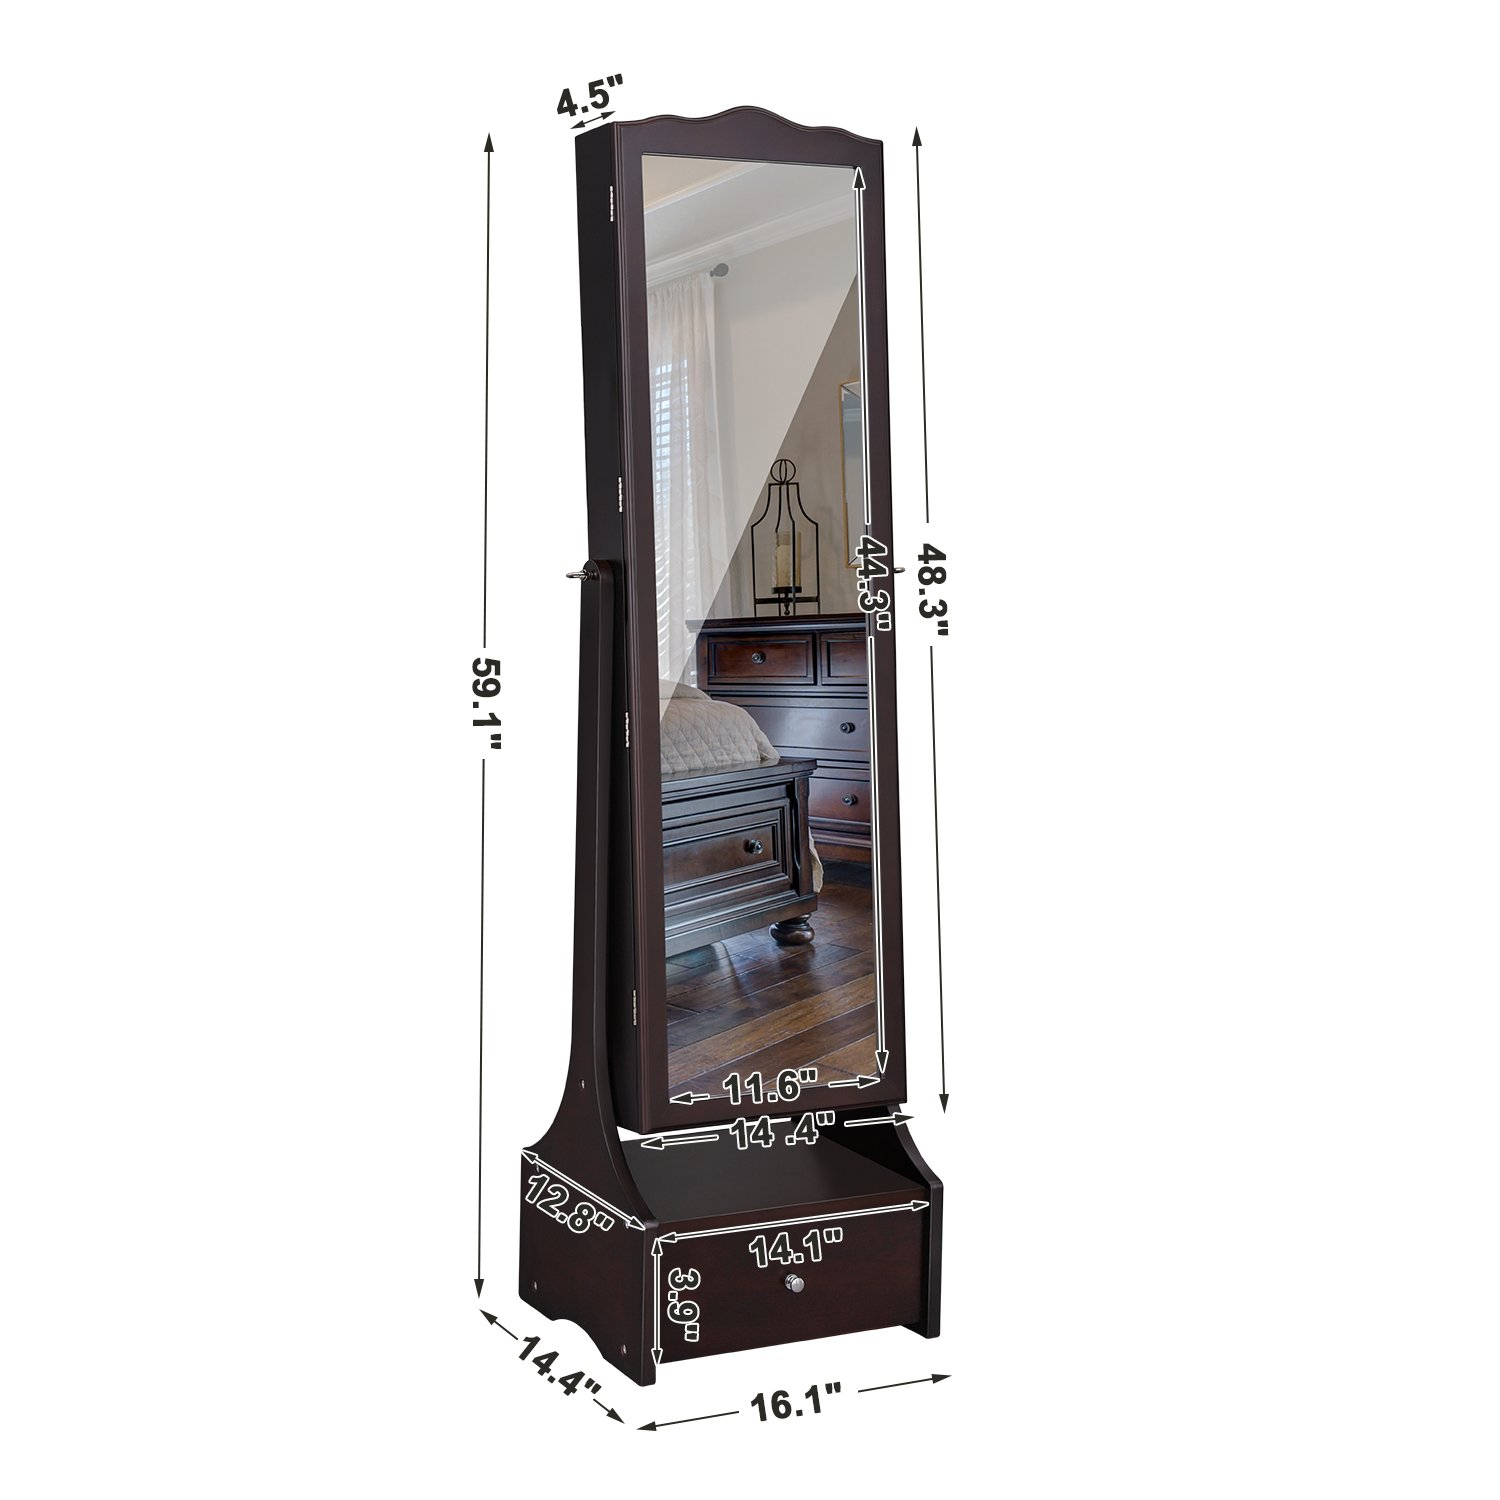 SONGMICS LED Jewelry Cabinet Lockable Jewelry Armoire with Full Length Mirror, Makeup Tray and Large Drawer Base Brown Patented Mother's Day Gift UJJC87BR by SONGMICS (Image #8)